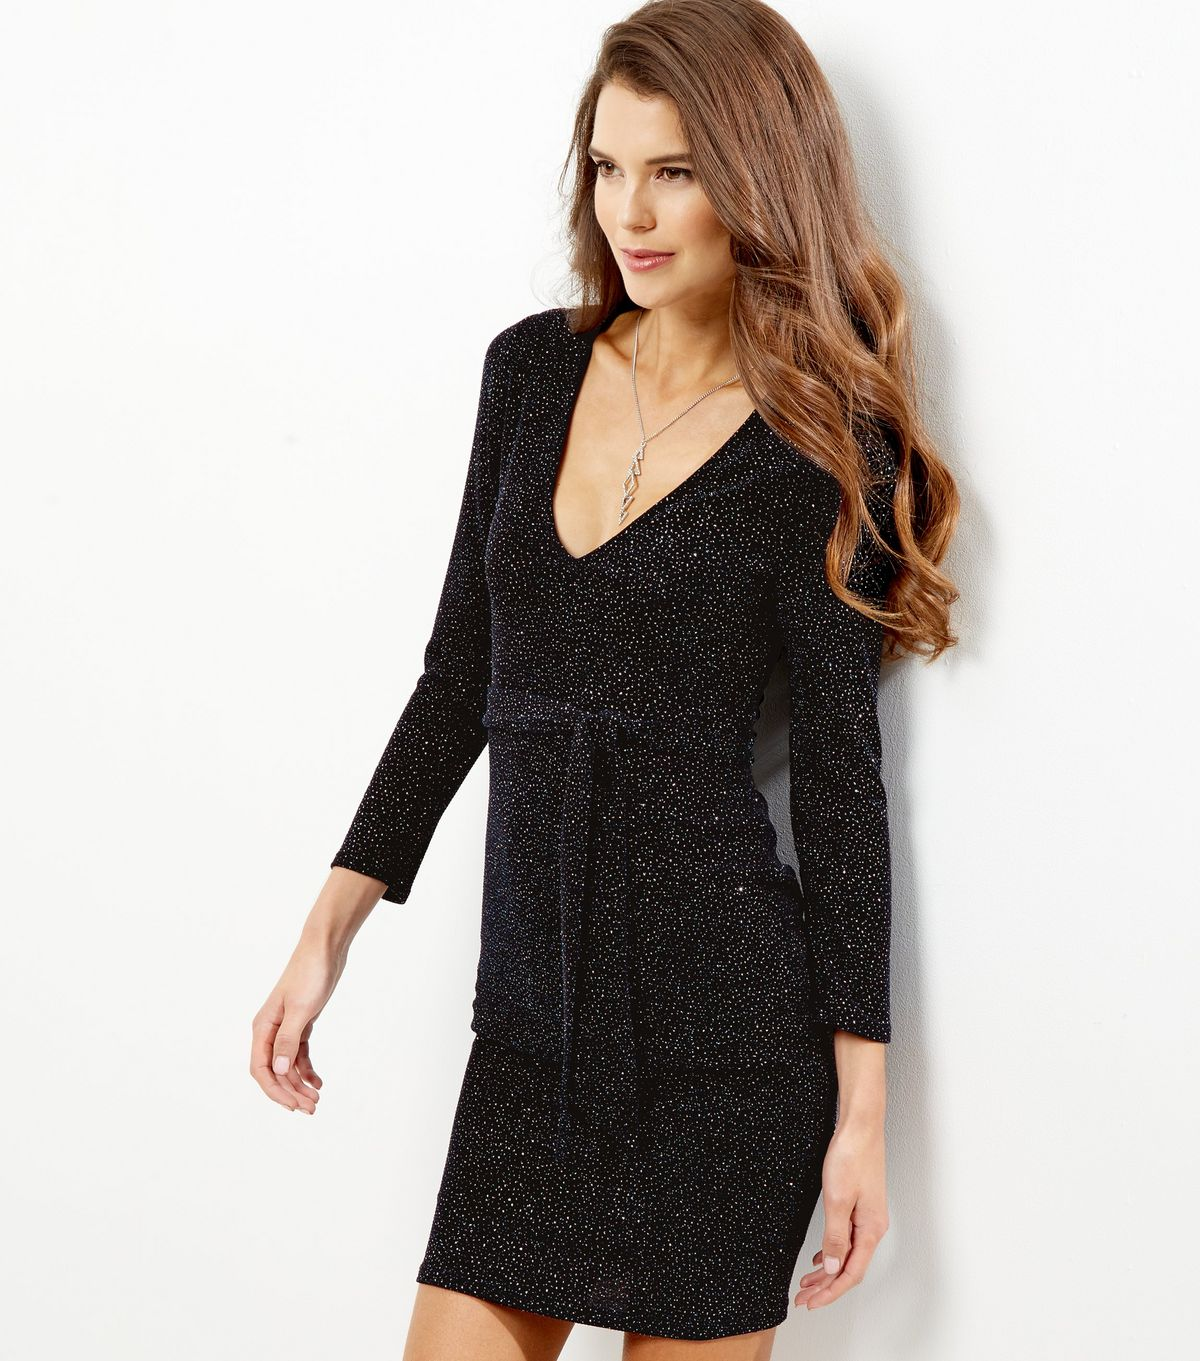 http://media.newlookassets.com/i/newlook/502354541/womens/going-out-/going-out-dresses/navy-glitter-metallic-scarf-bodycon-dress/?$new_pdp_szoom_image_1200$